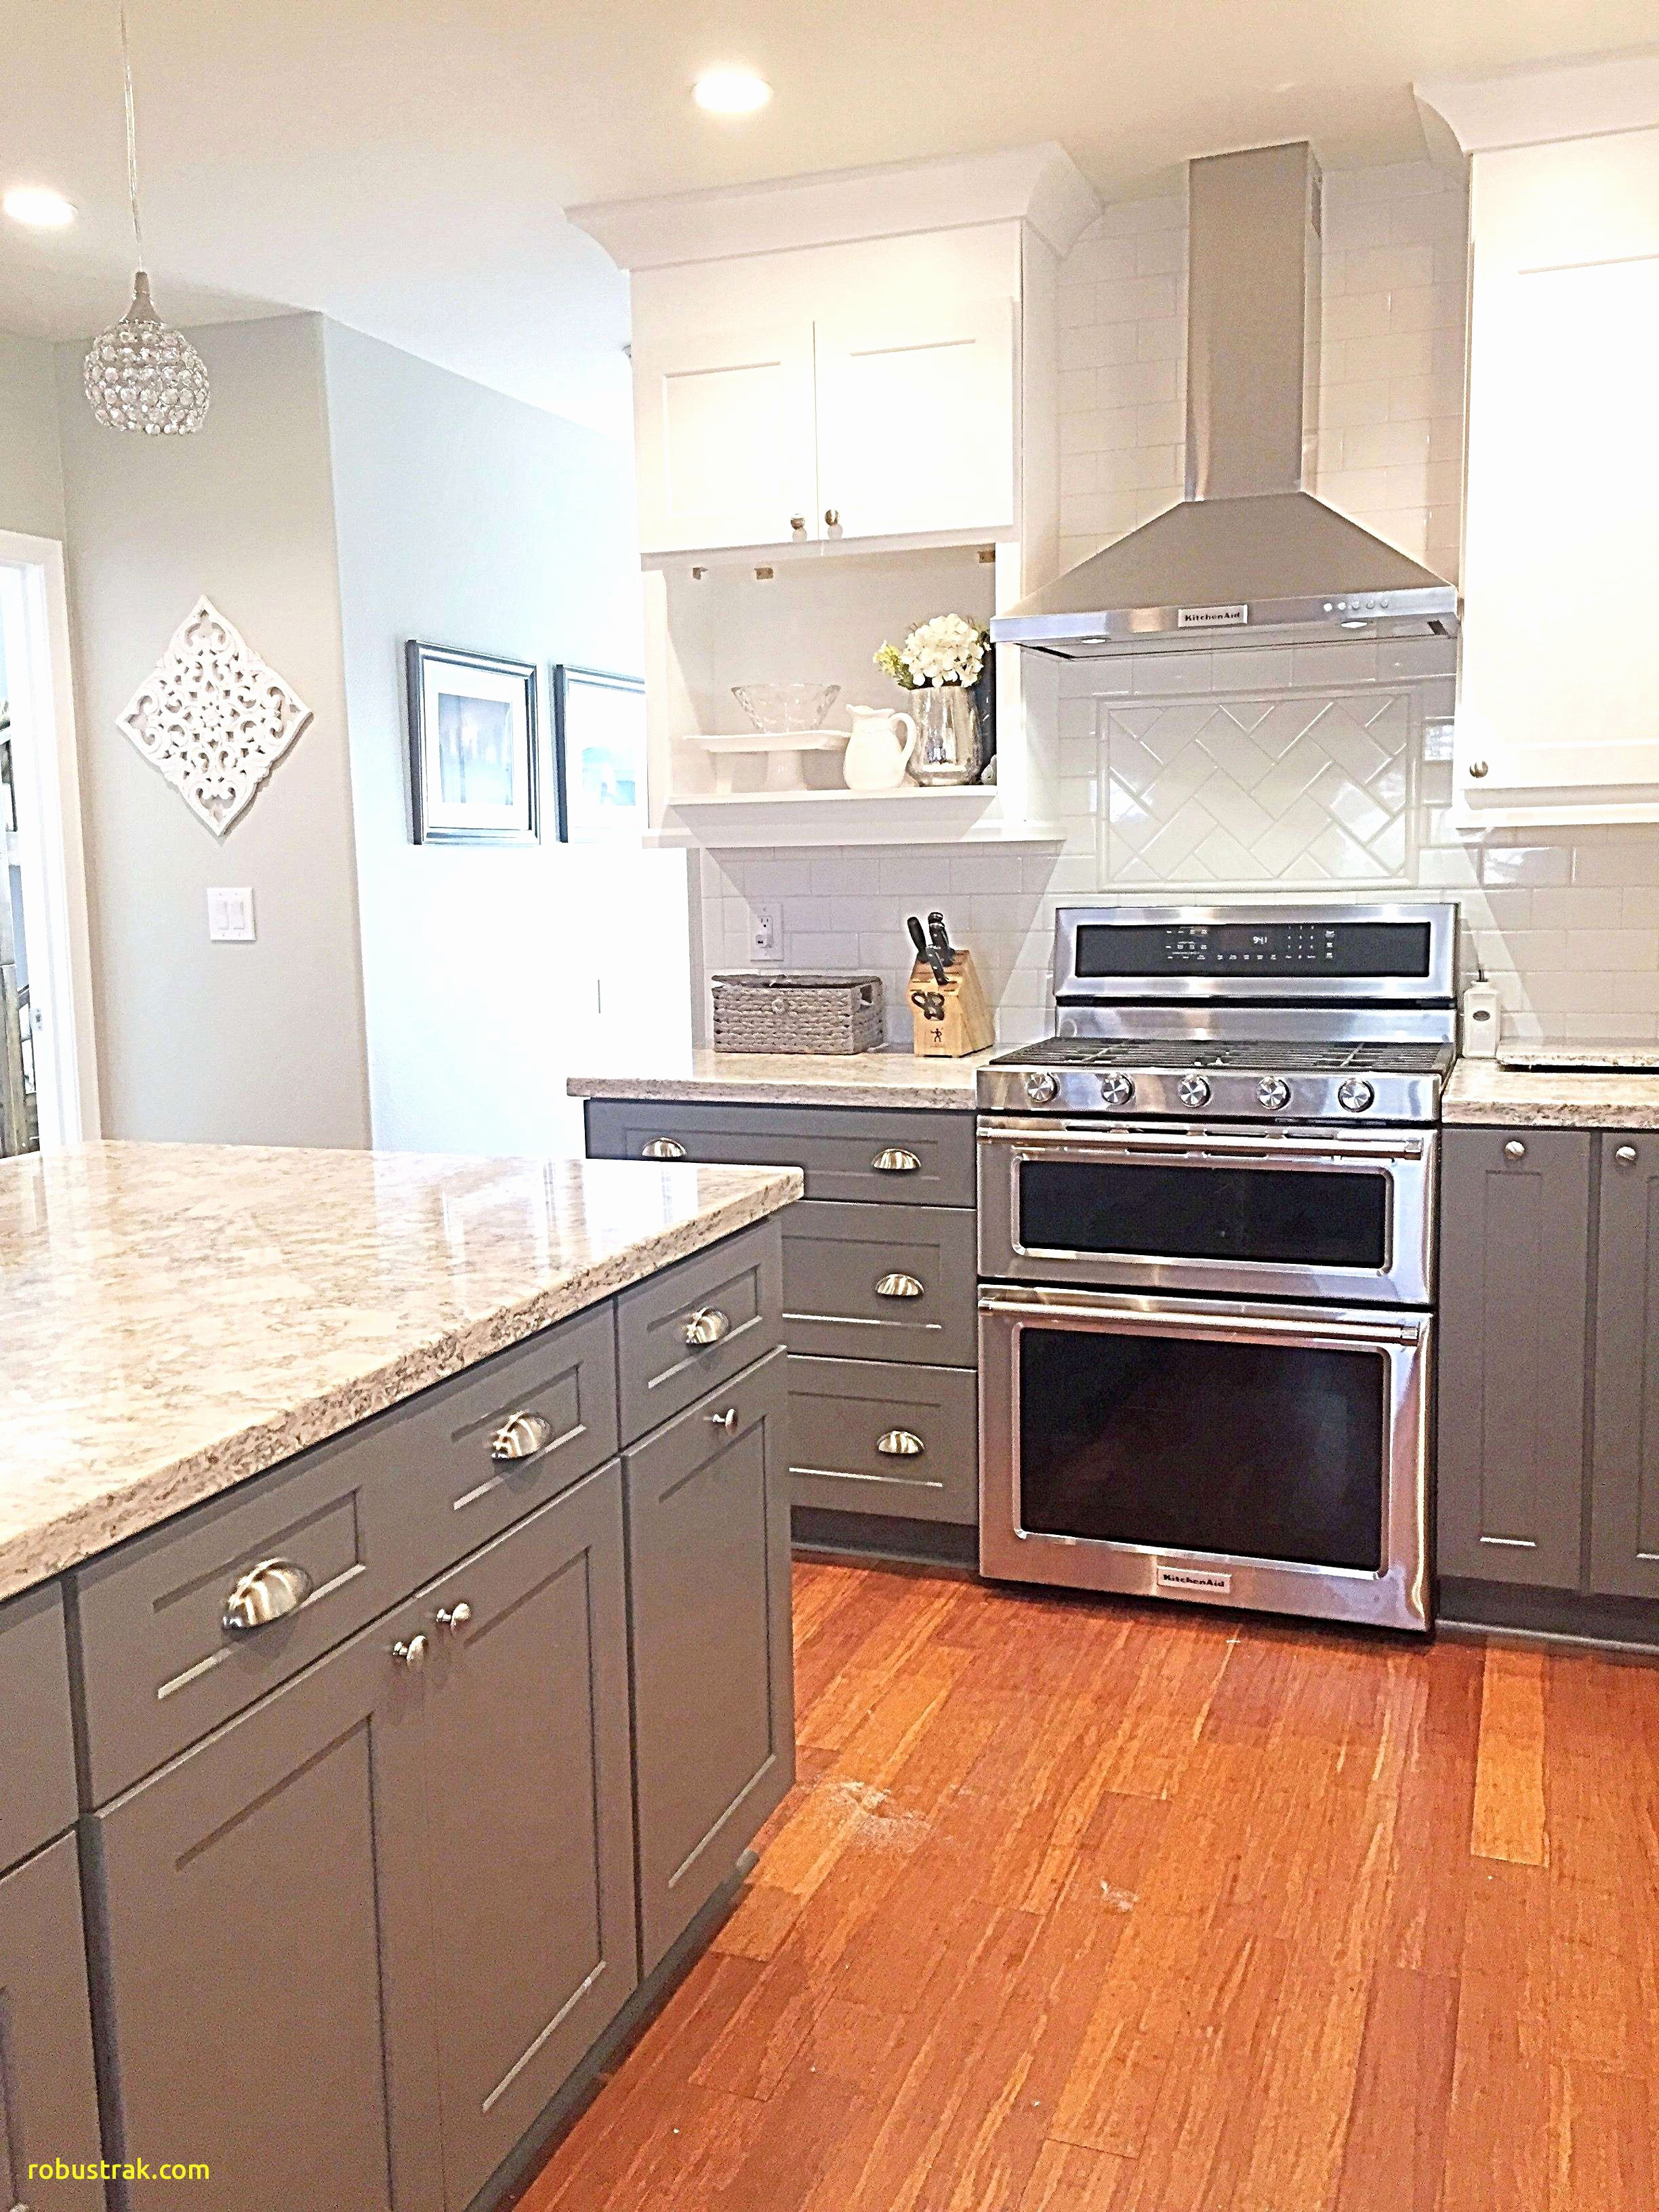 20 Trendy Can You Use Different Color Hardwood Floors 2021 free download can you use different color hardwood floors of flooring website 50 fresh how to put in hardwood floors 50 s floor for kitchen colors with dark cabinets best colored kitchen cabinets lovely k